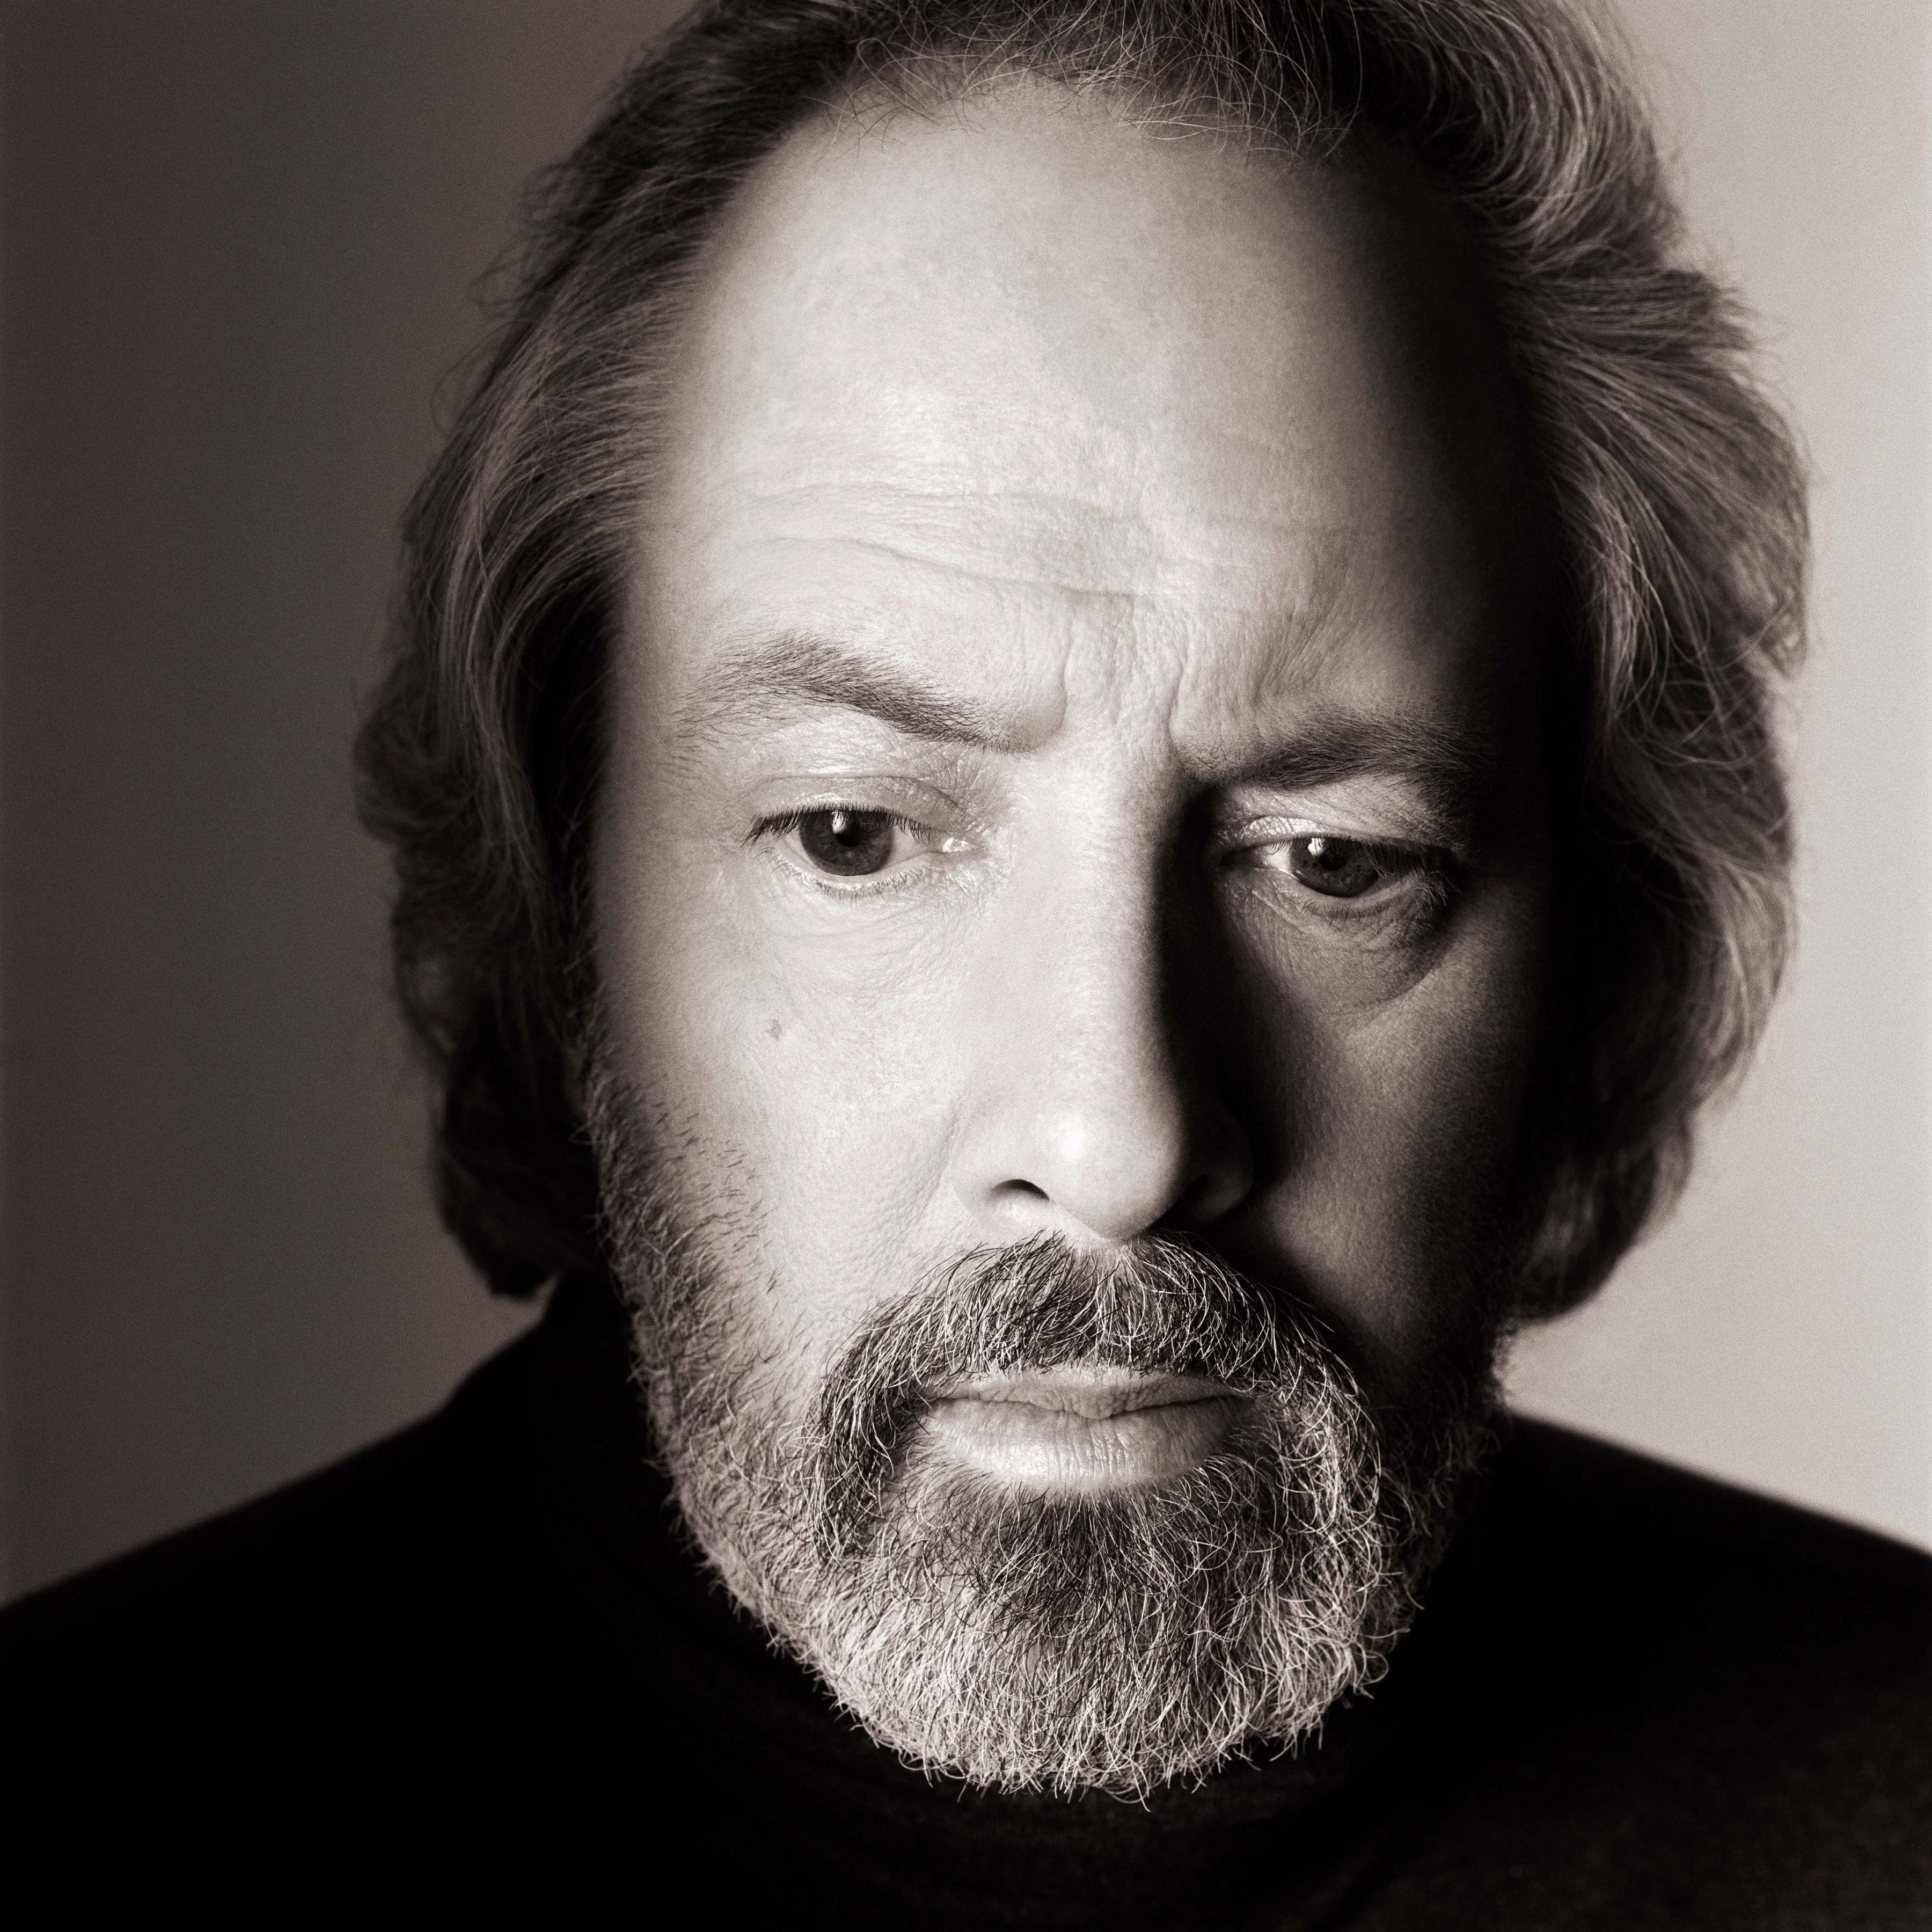 Robert Towne, Portrait, Los Angeles, 1988, Archival Pigment Print